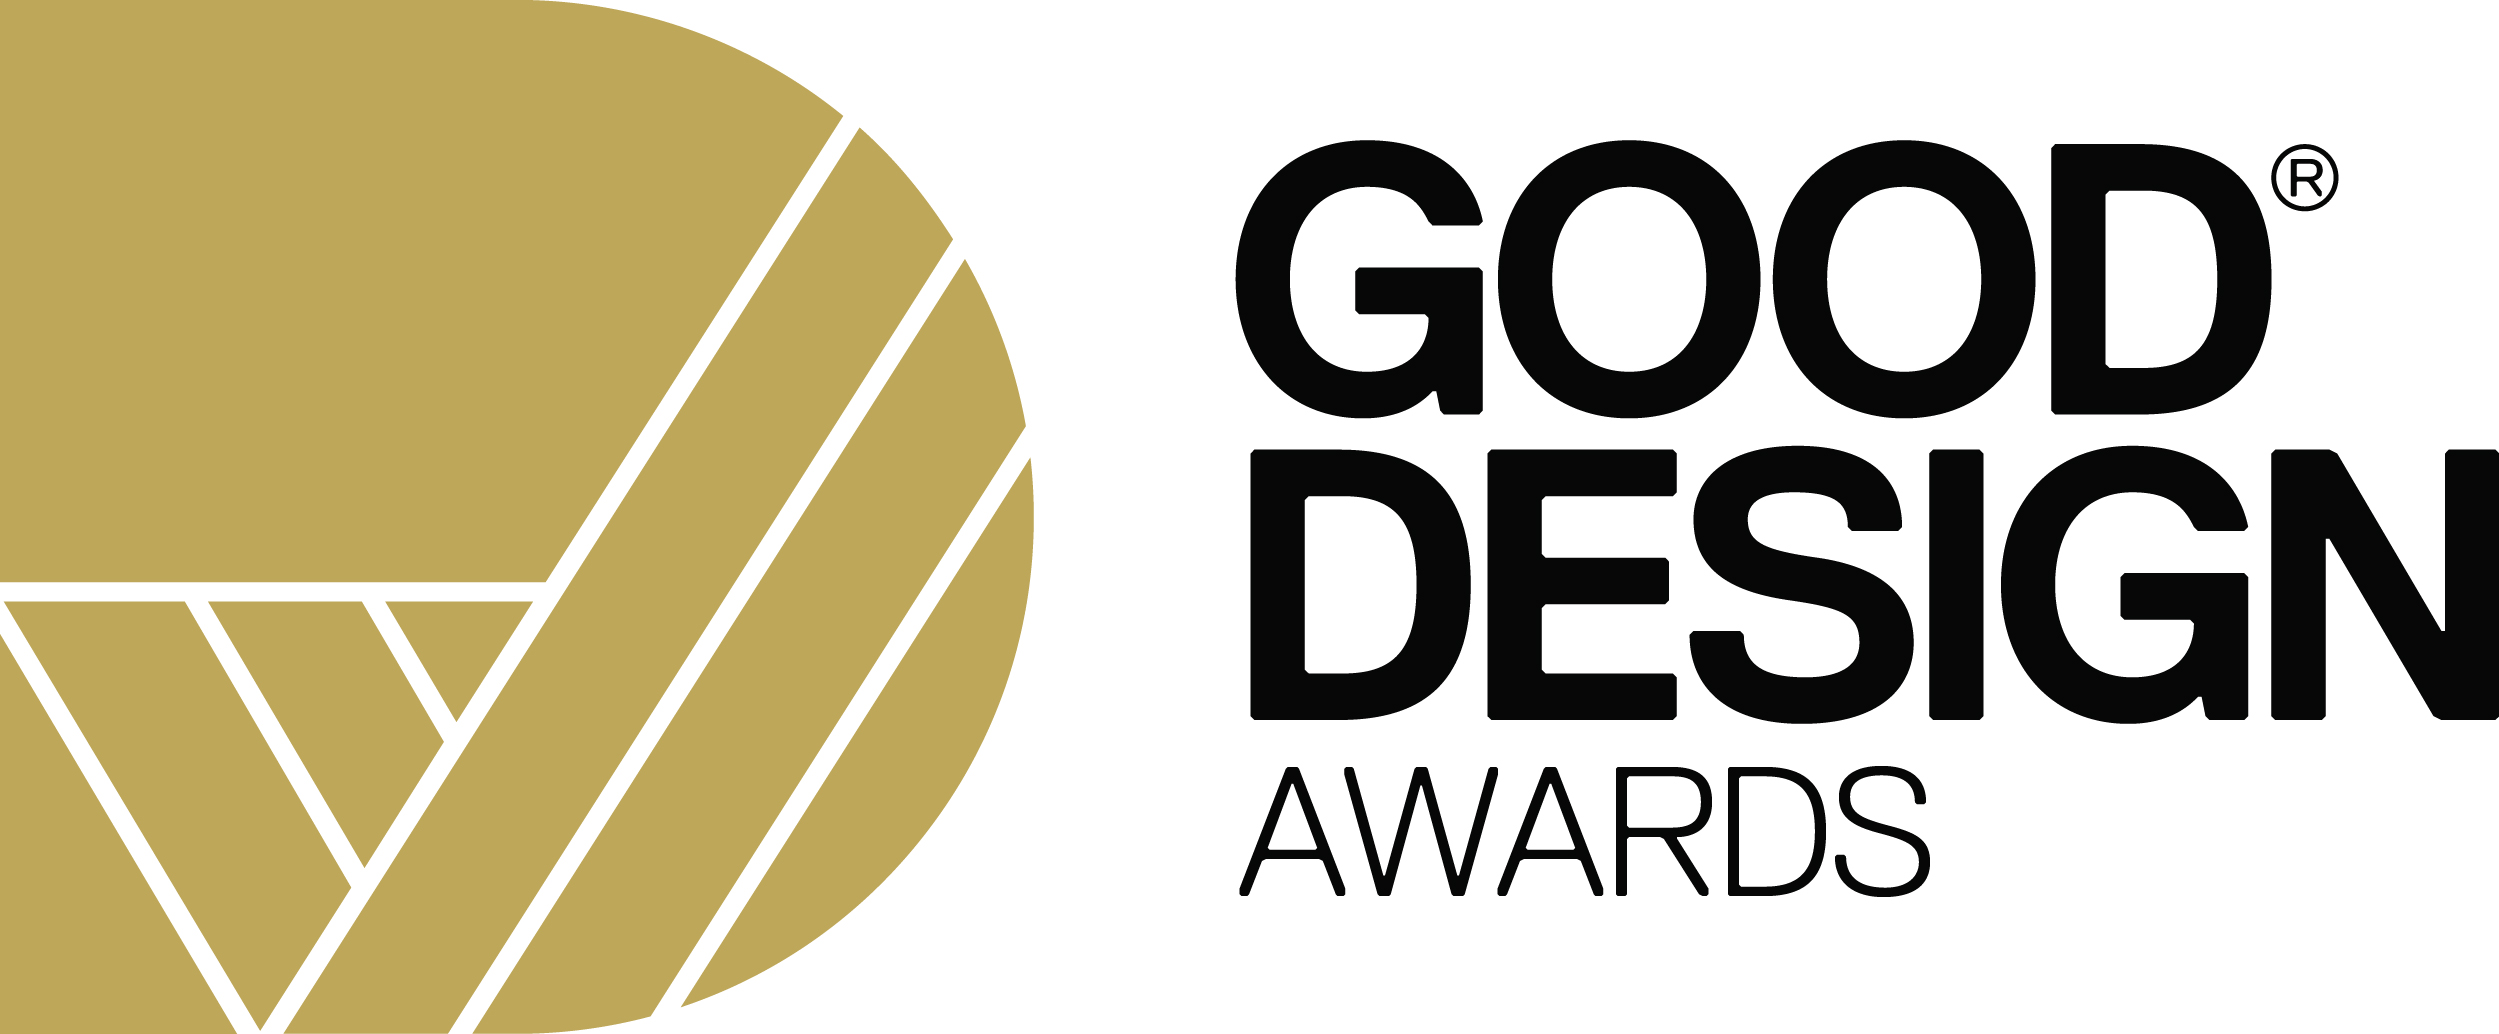 2015 Good Design Awards open for entries on 3 February